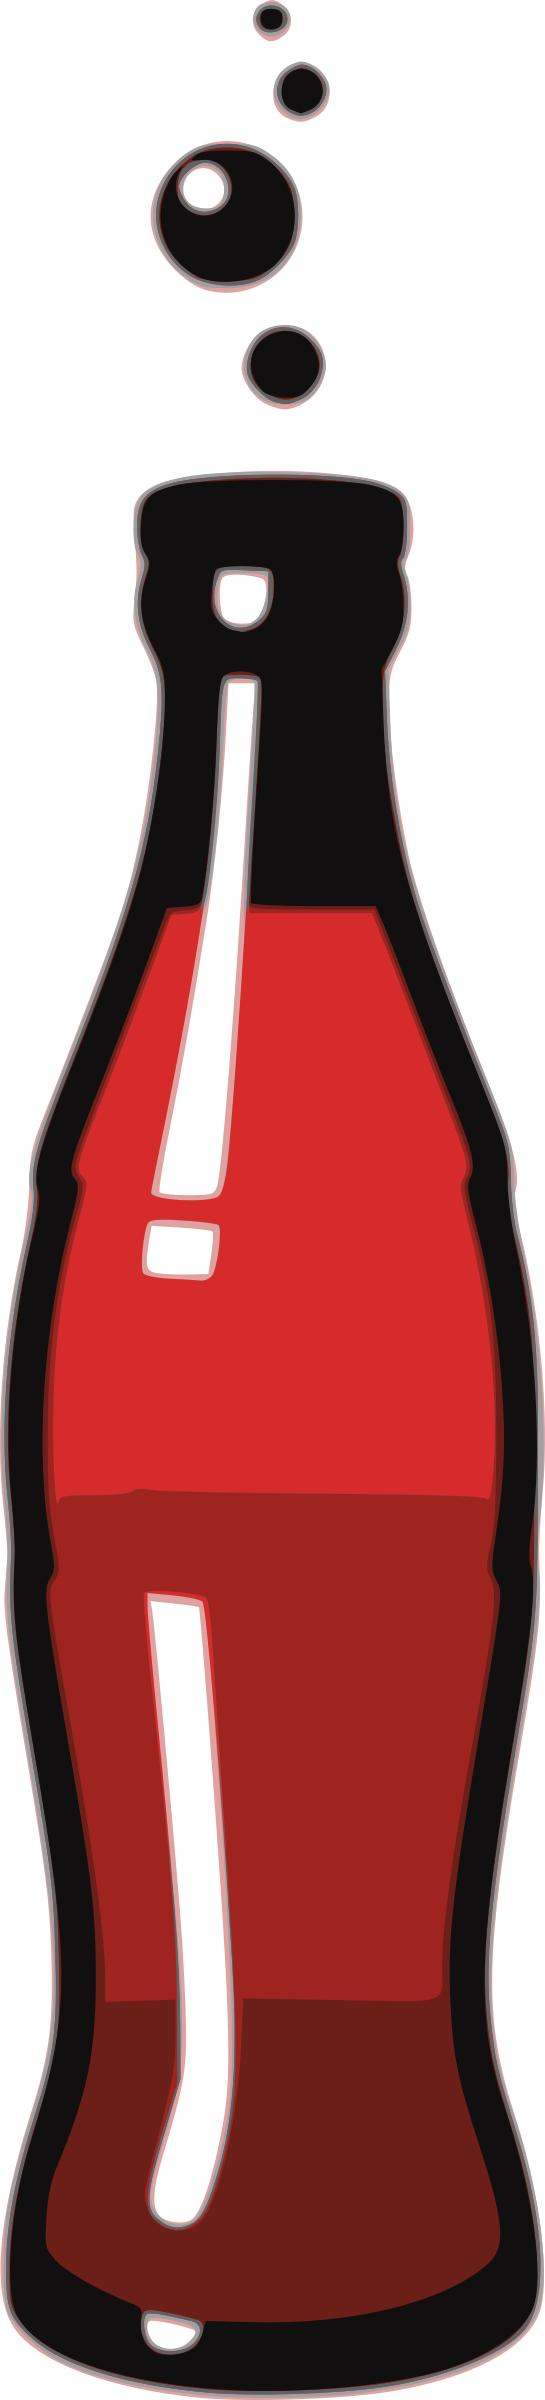 545x2400 Free Bottle Icons Png, Bottle Images